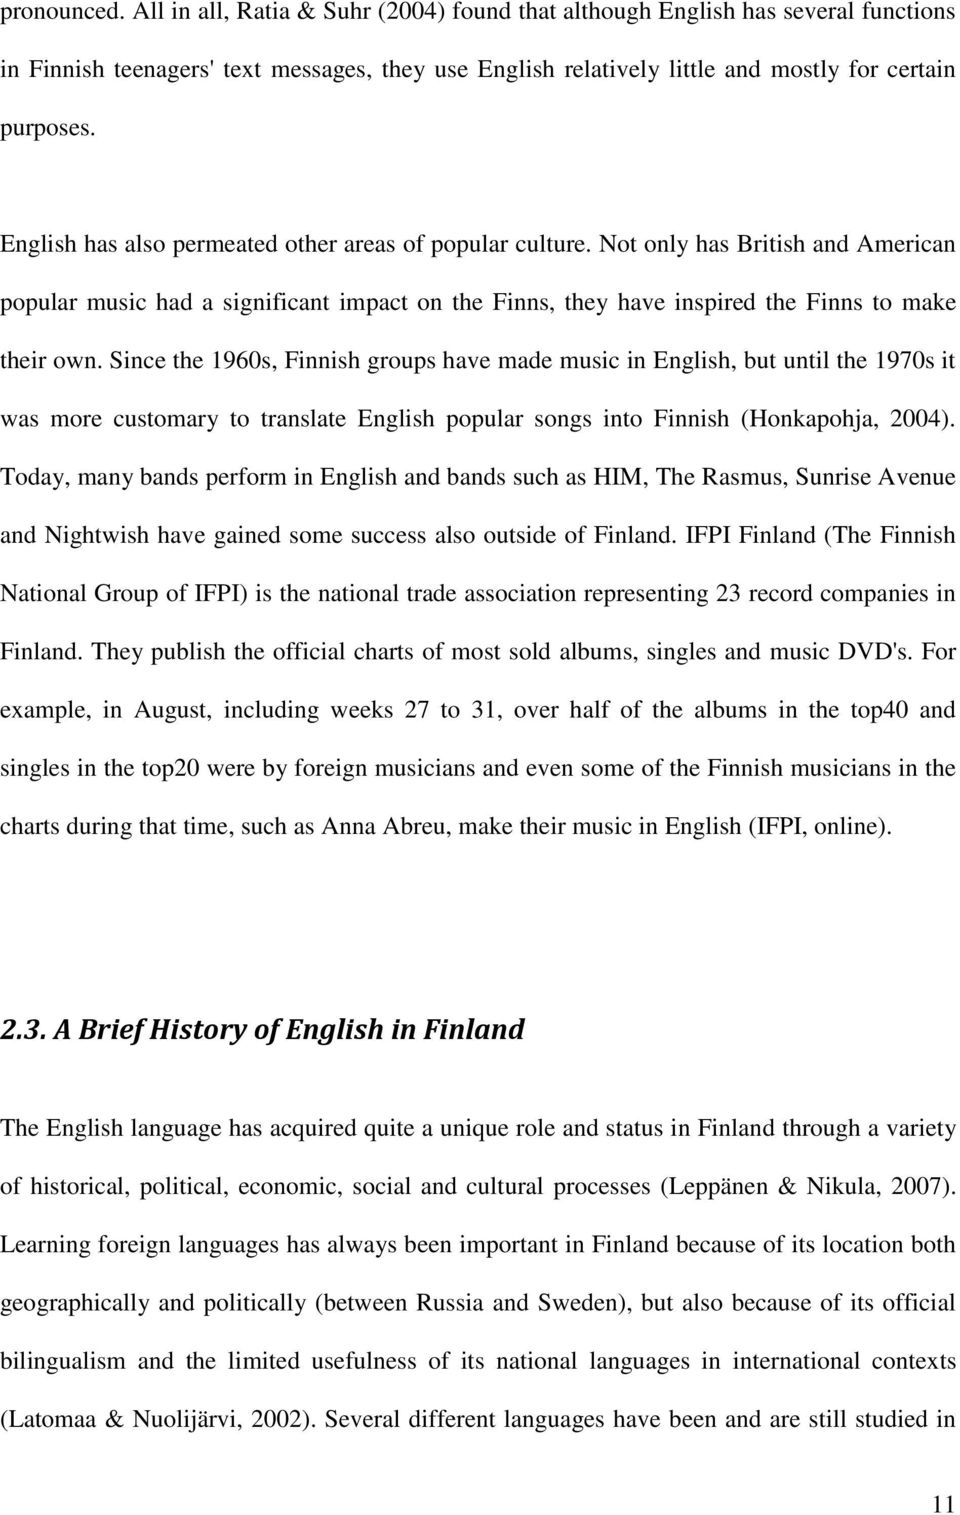 Since the 1960s, Finnish groups have made music in English, but until the 1970s it was more customary to translate English popular songs into Finnish (Honkapohja, 2004).